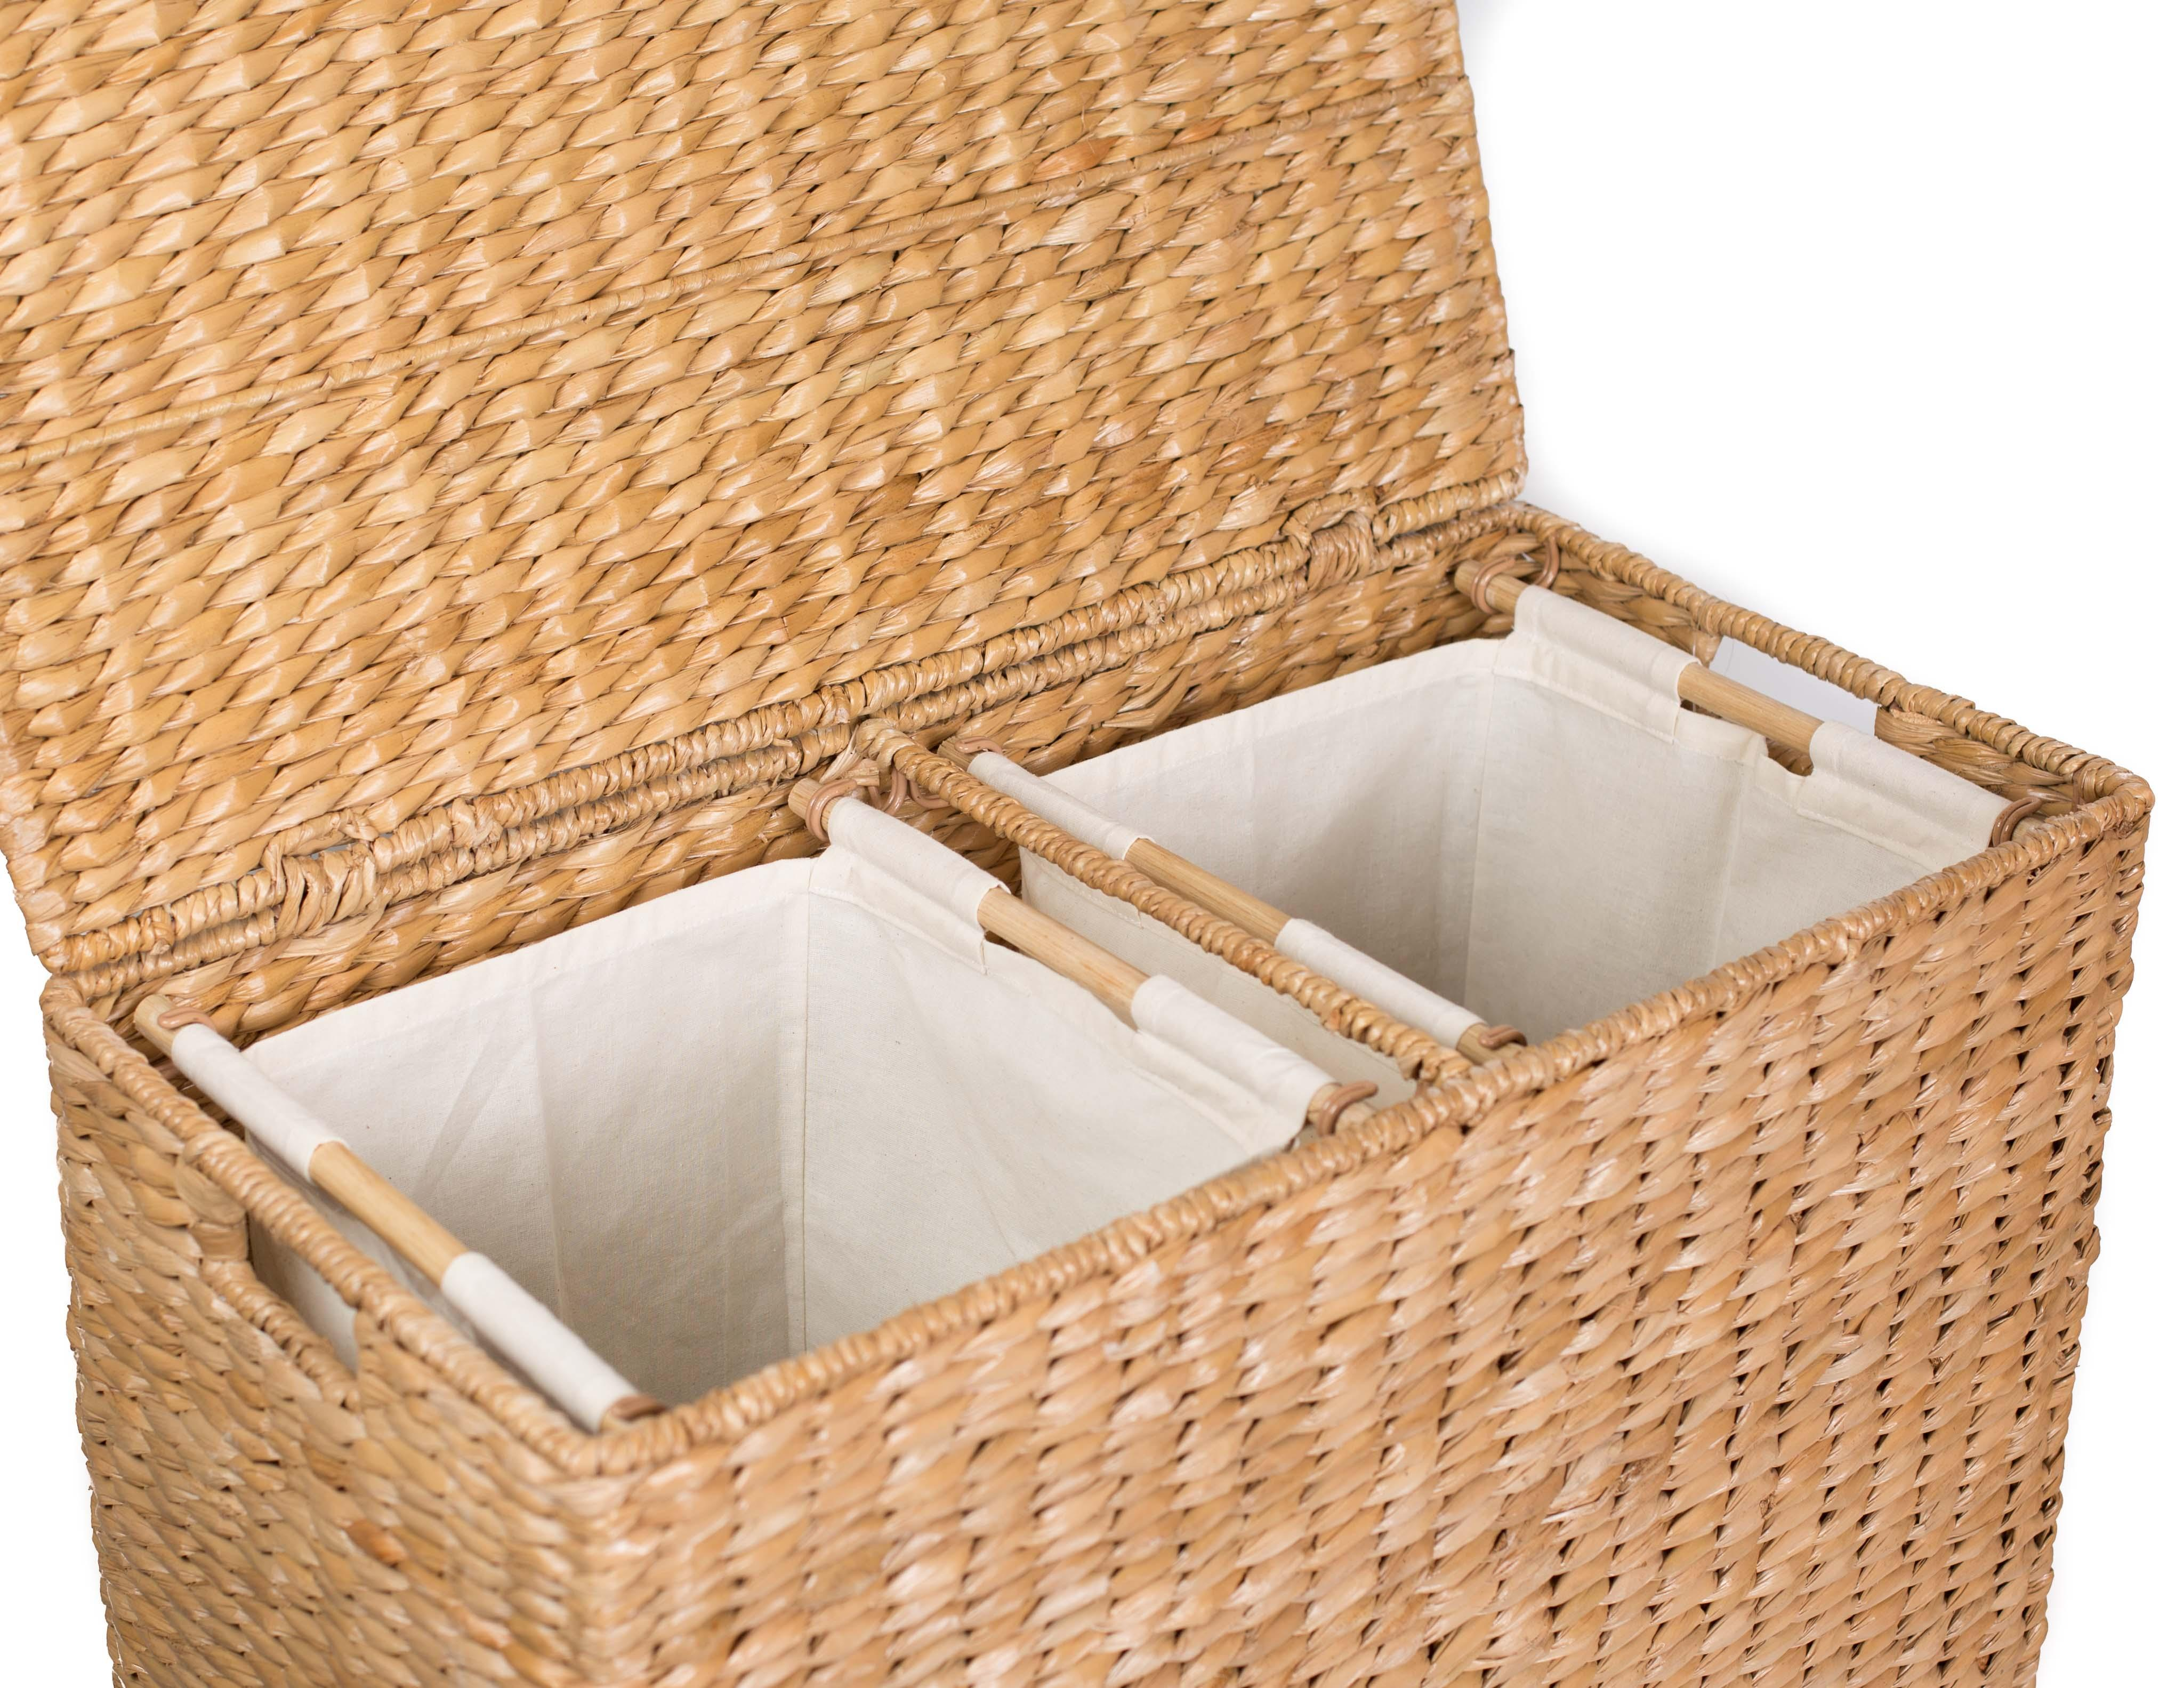 Birdrock home oversized divided hamper with liners honey made of natural woven - Laundry hamper divided ...